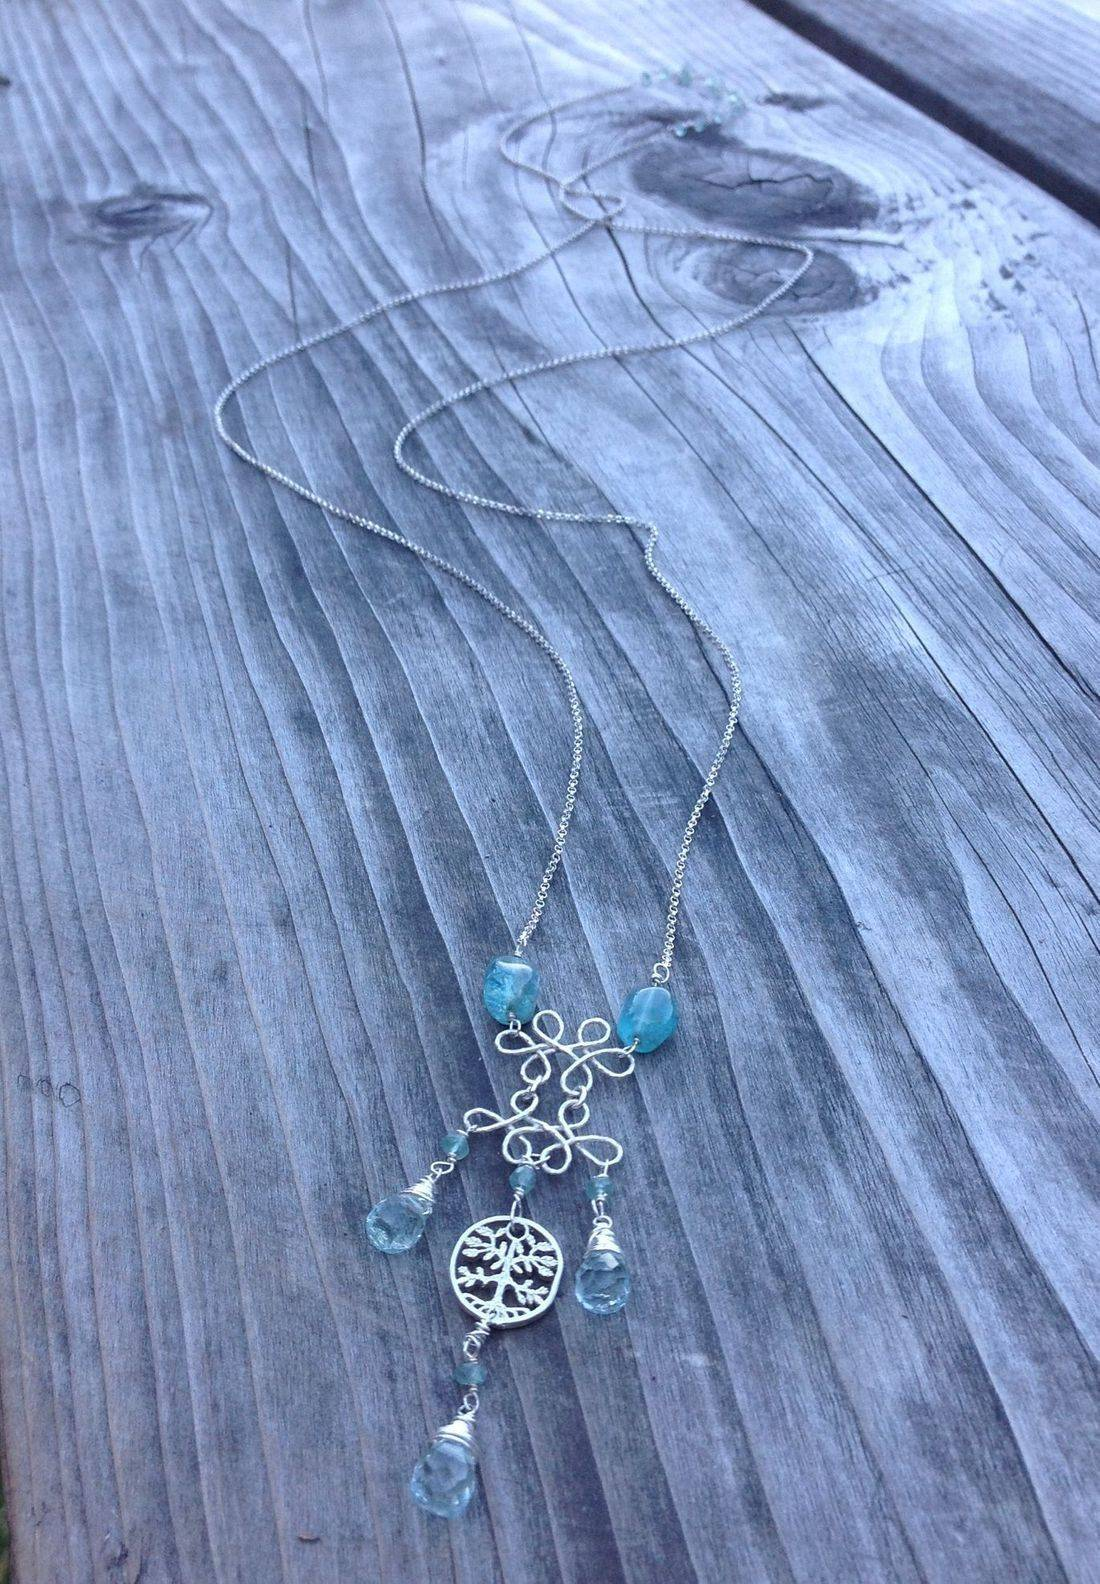 aqua marine chandelier pendant,  long sterling silver chain